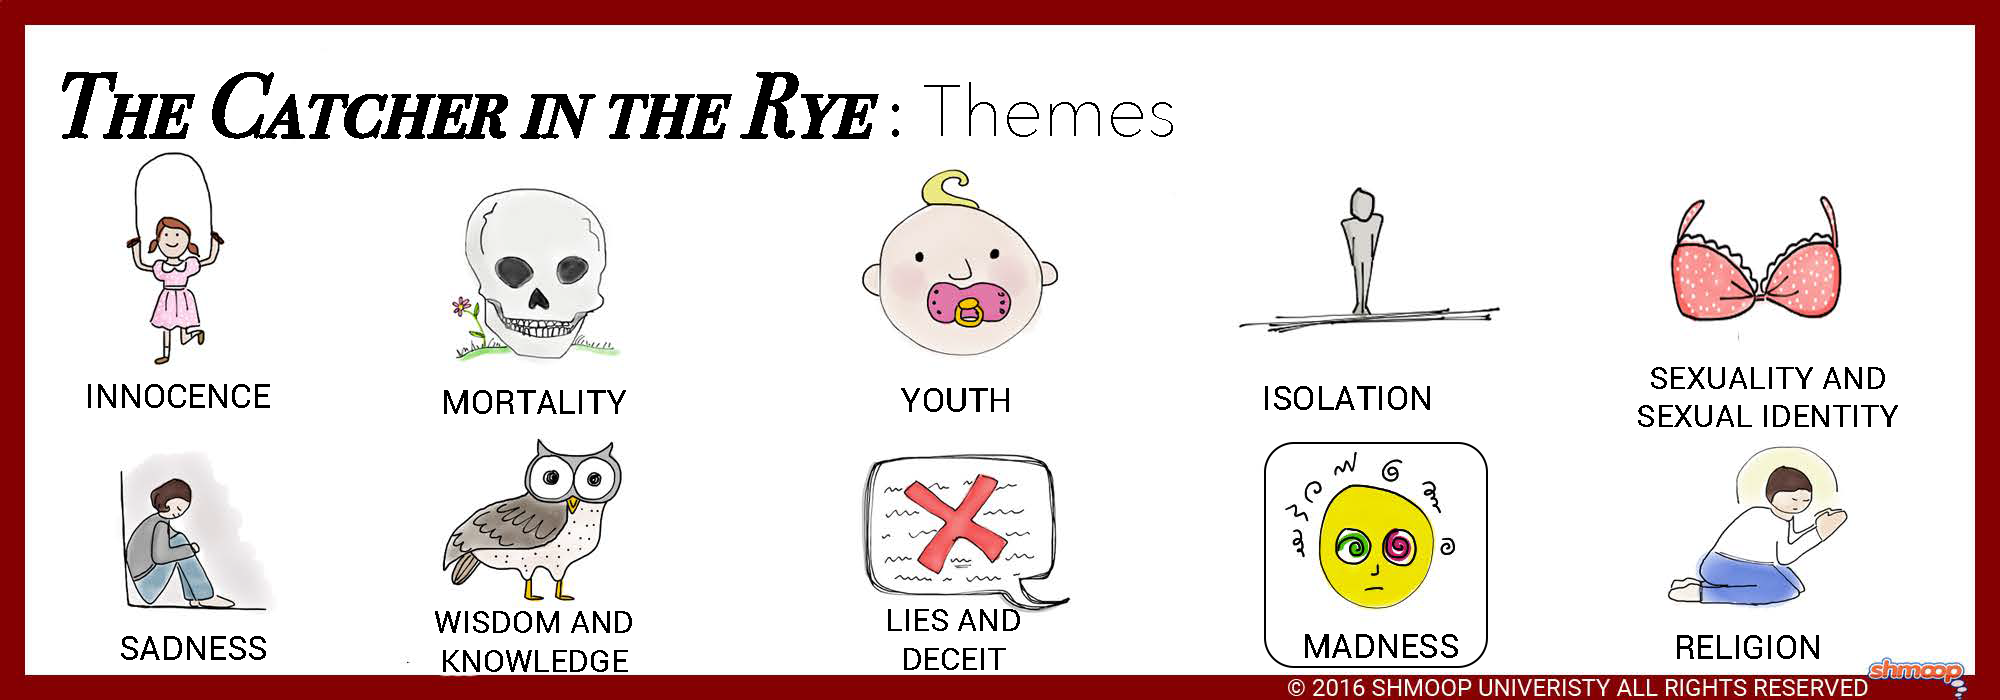 literary analysis essay on the catcher in the rye Good literary essay titles not only capture your reader's interest, but  of the cliff:  loss of innocence in jd salinger's 'the catcher in the rye' .